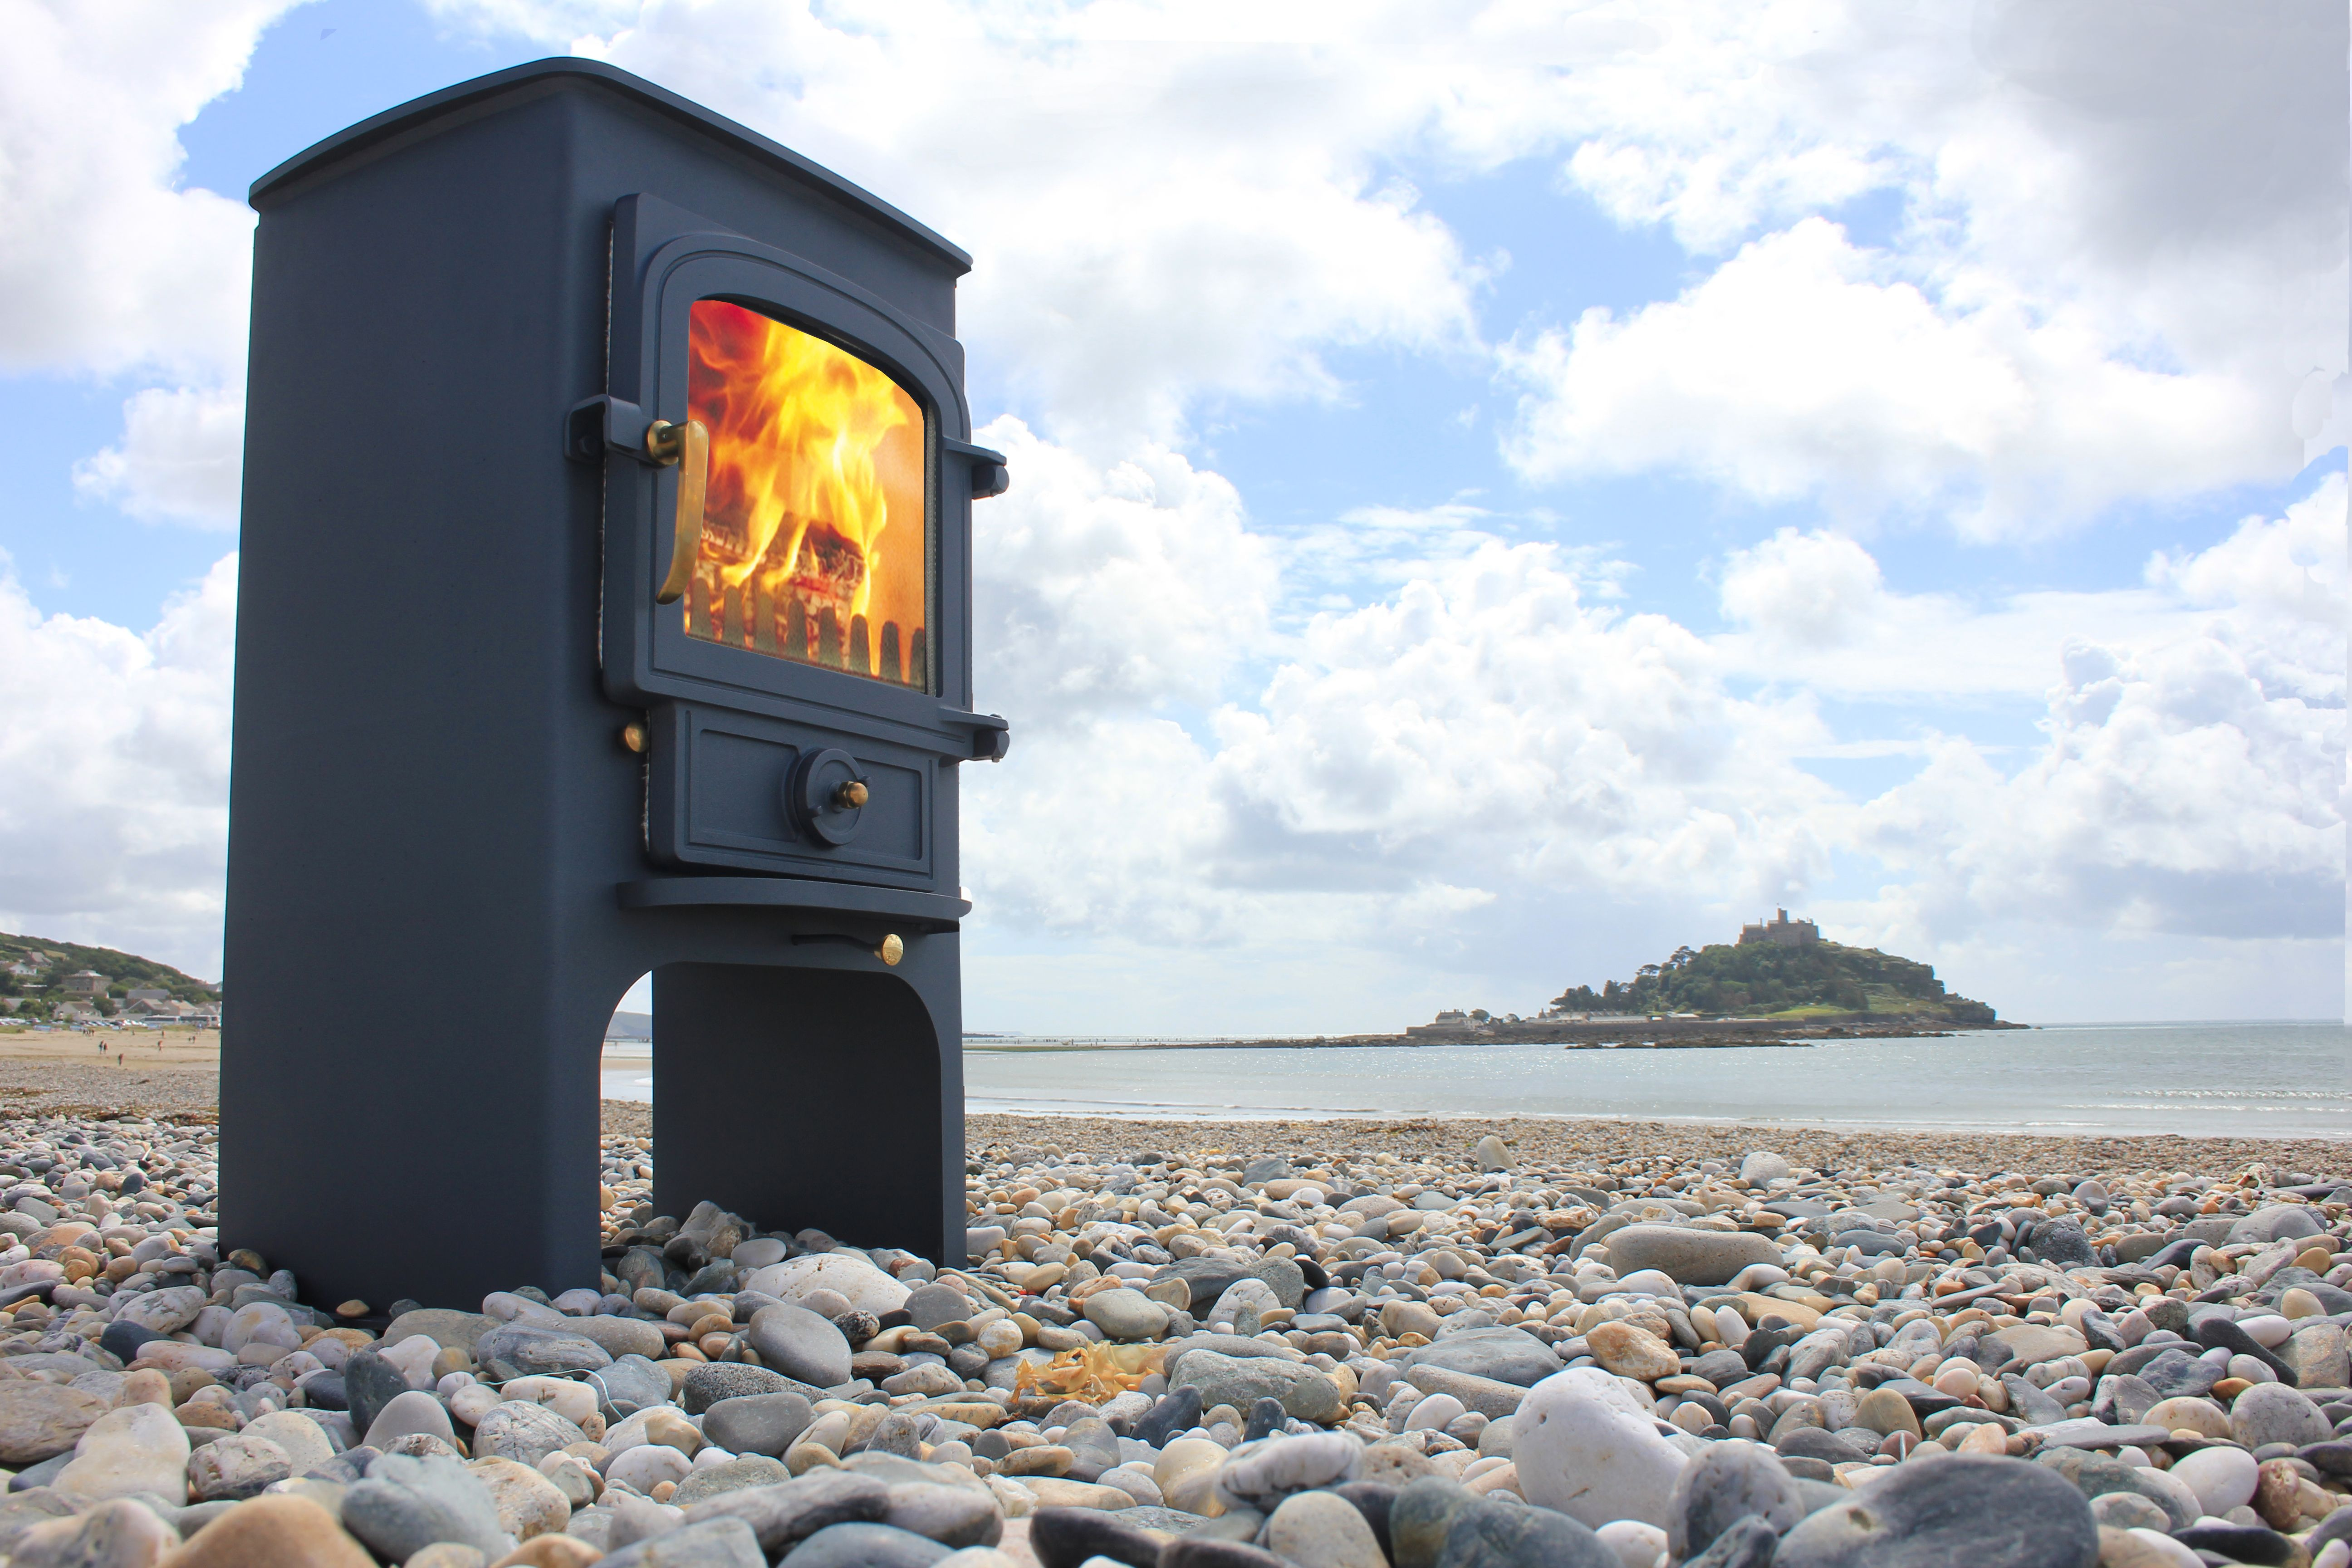 Clearview on Marazion beach Cornwall #woodbuner #Clearview